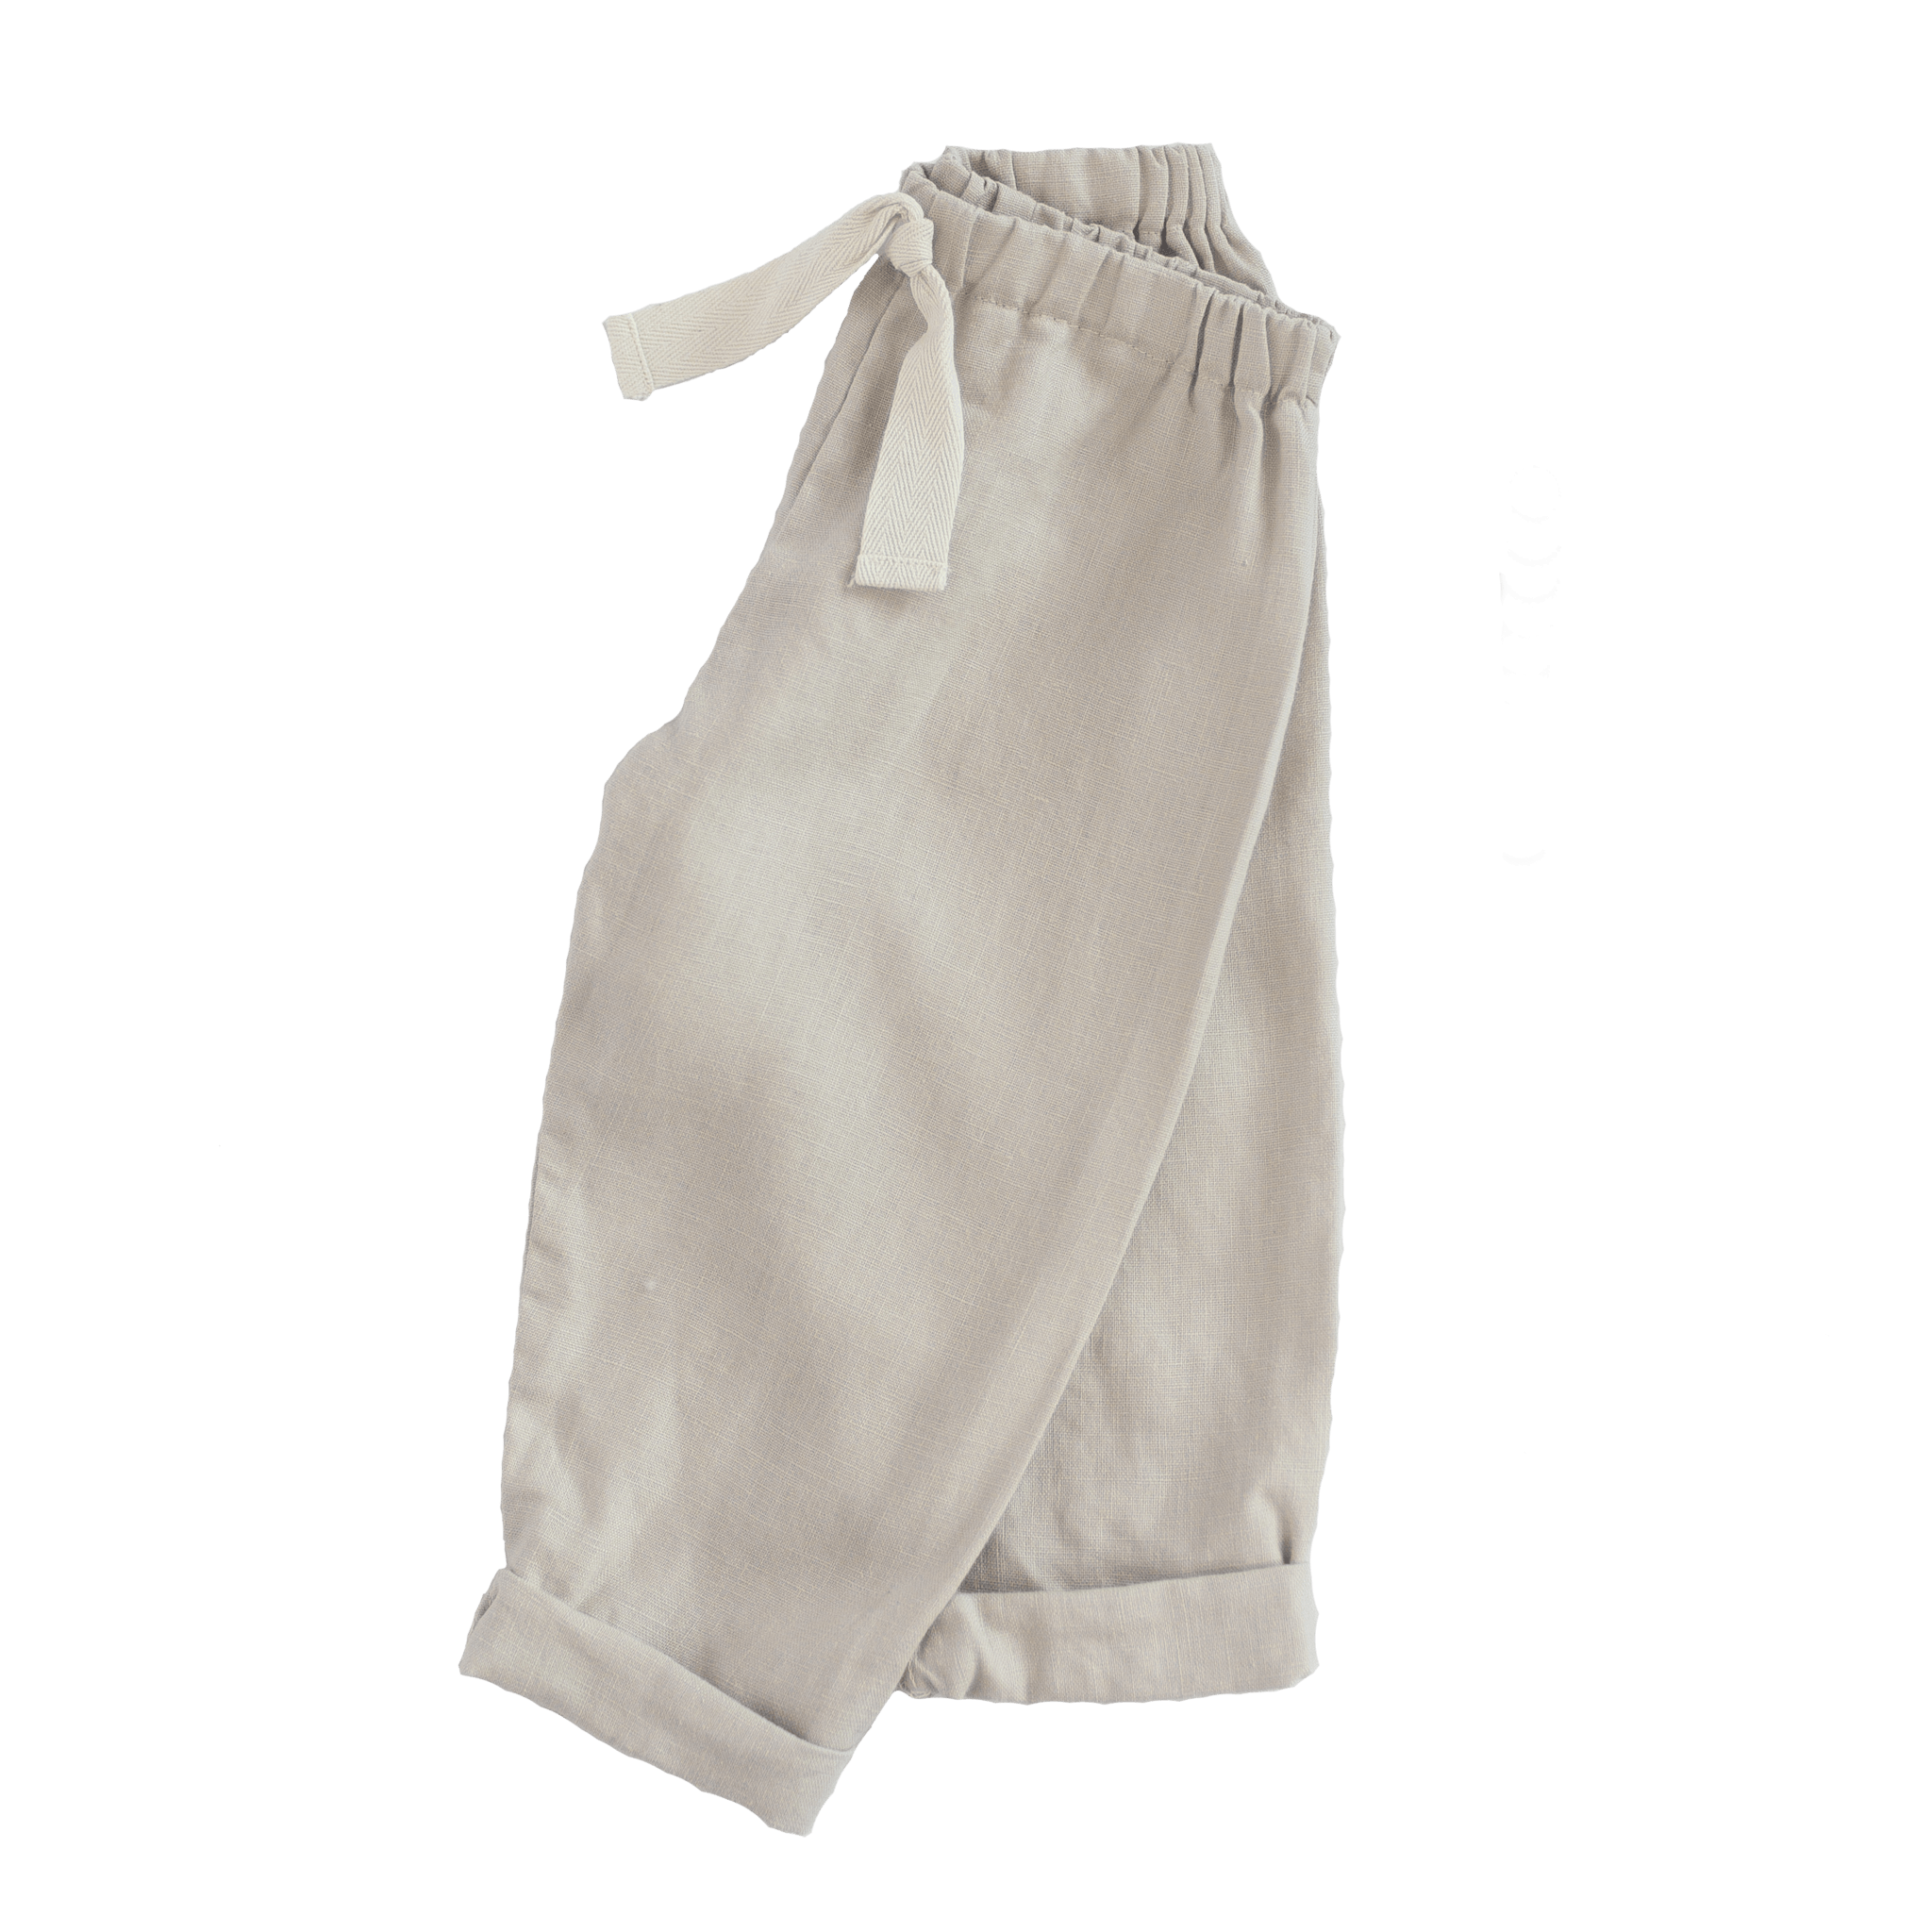 fawn&forest Tortoise & the Hare Linen Pants - Natural - fawn&forest